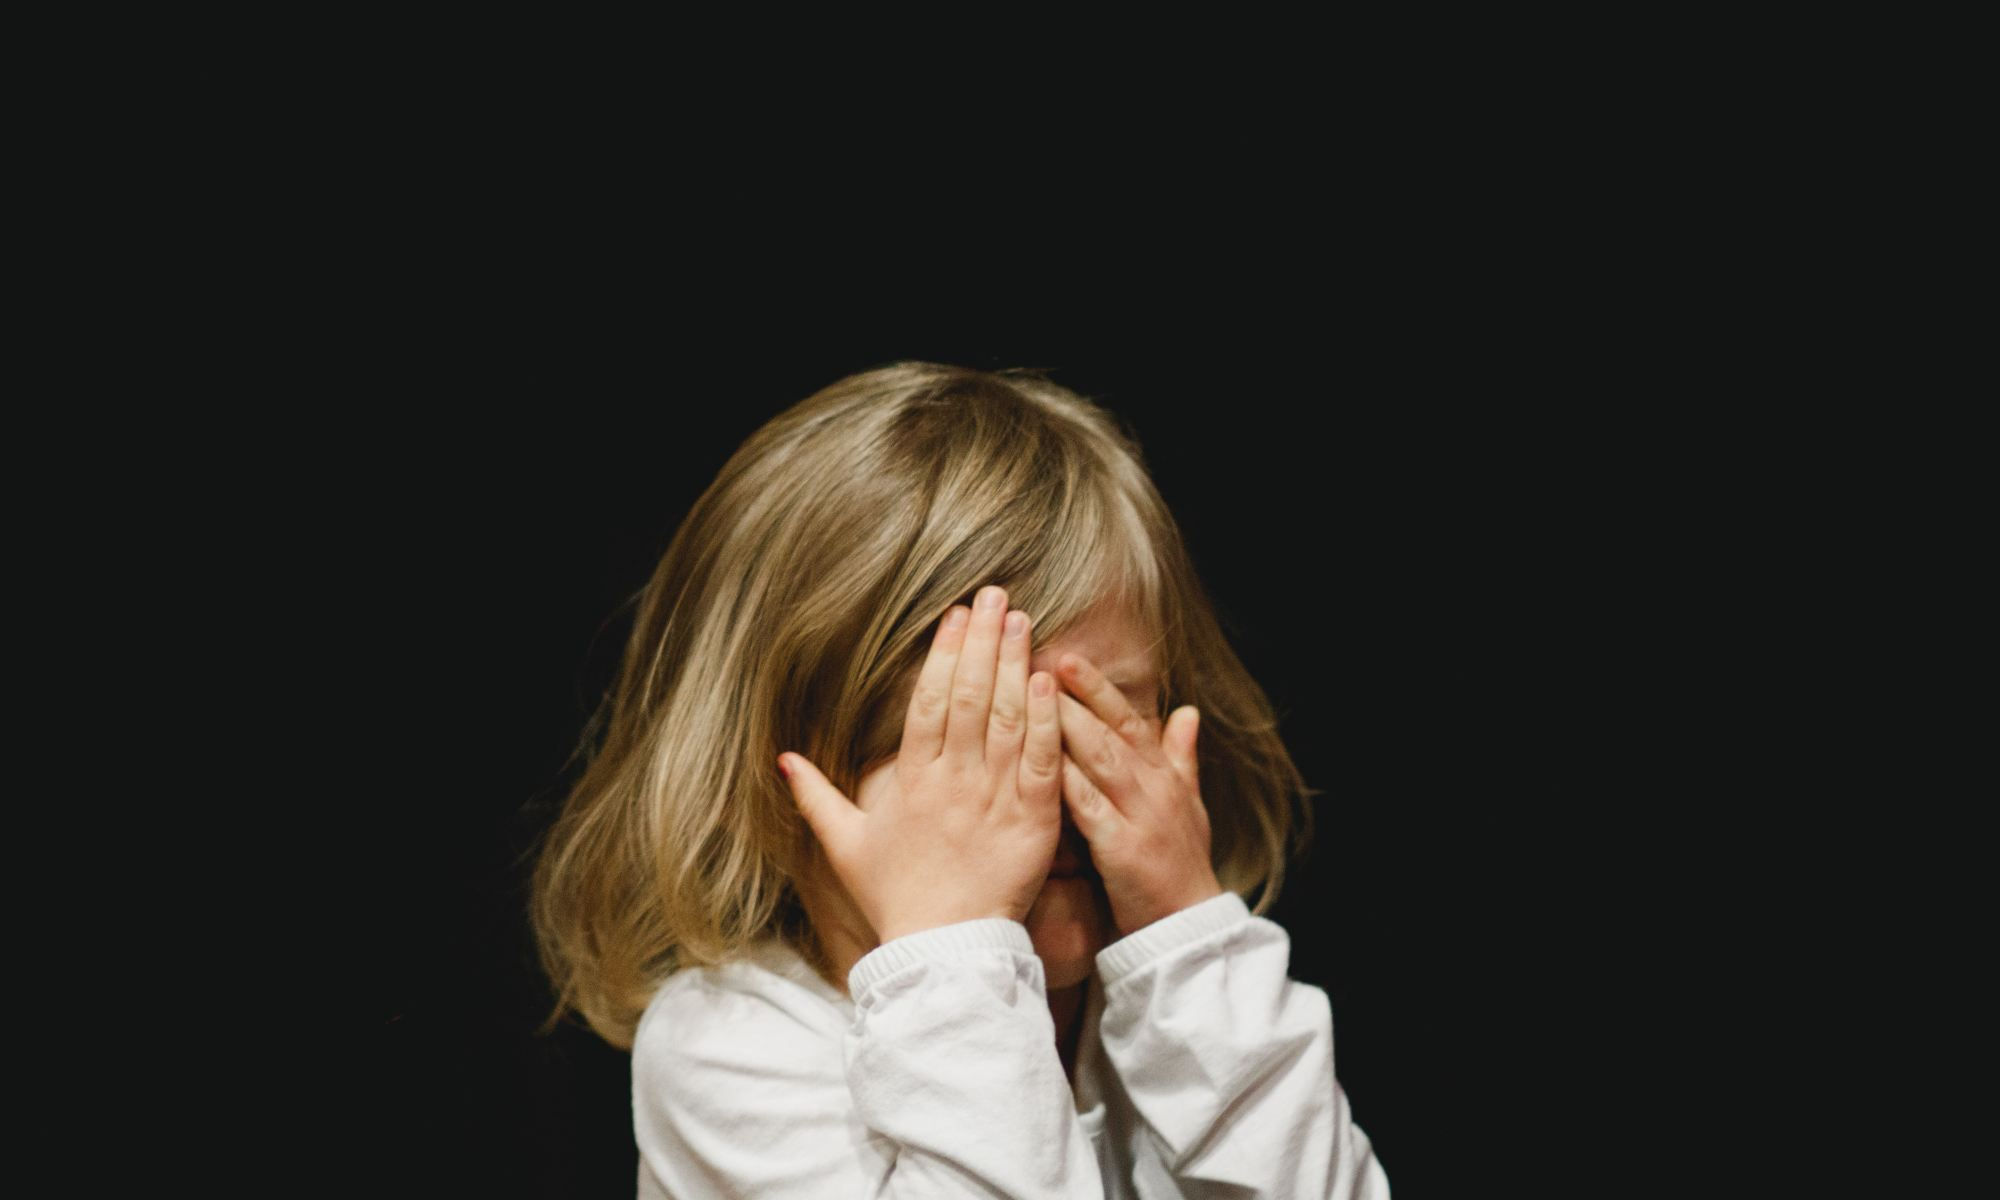 Young girl scared of a pedophile and covering her face with both hands